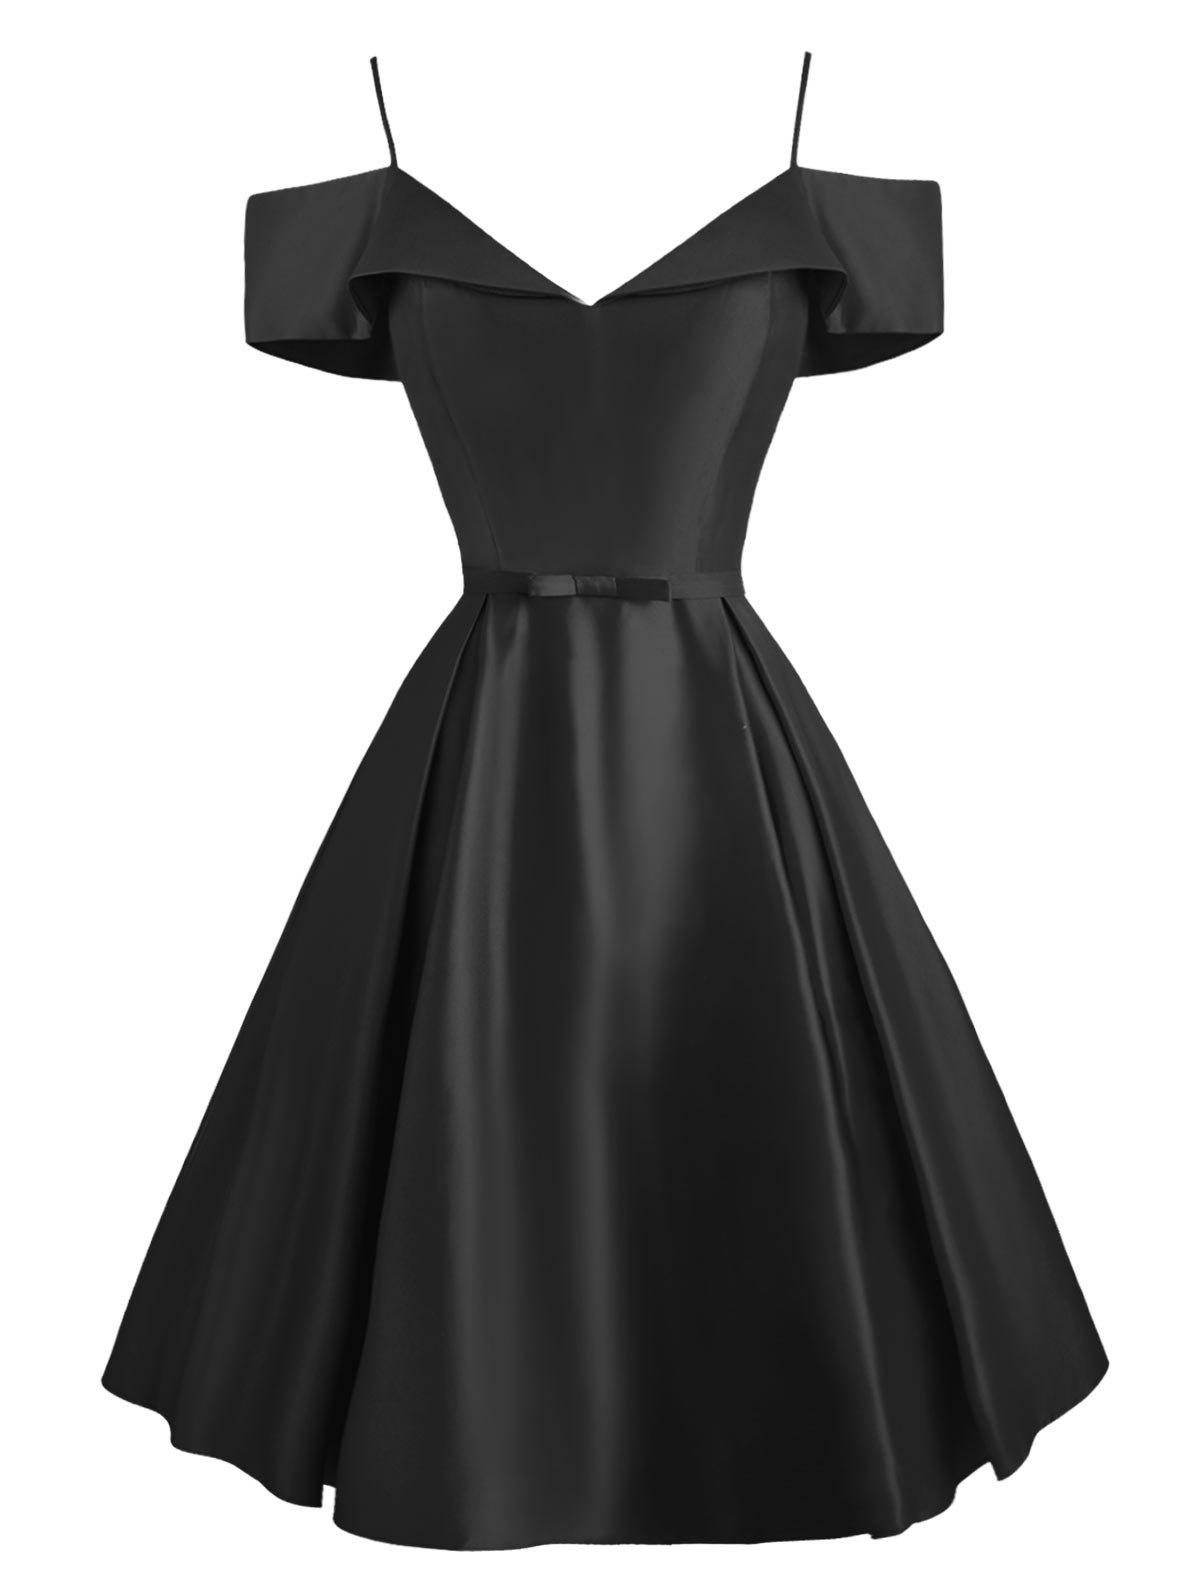 Cami Foldover Belted Cold Shoulder Dress - BLACK M